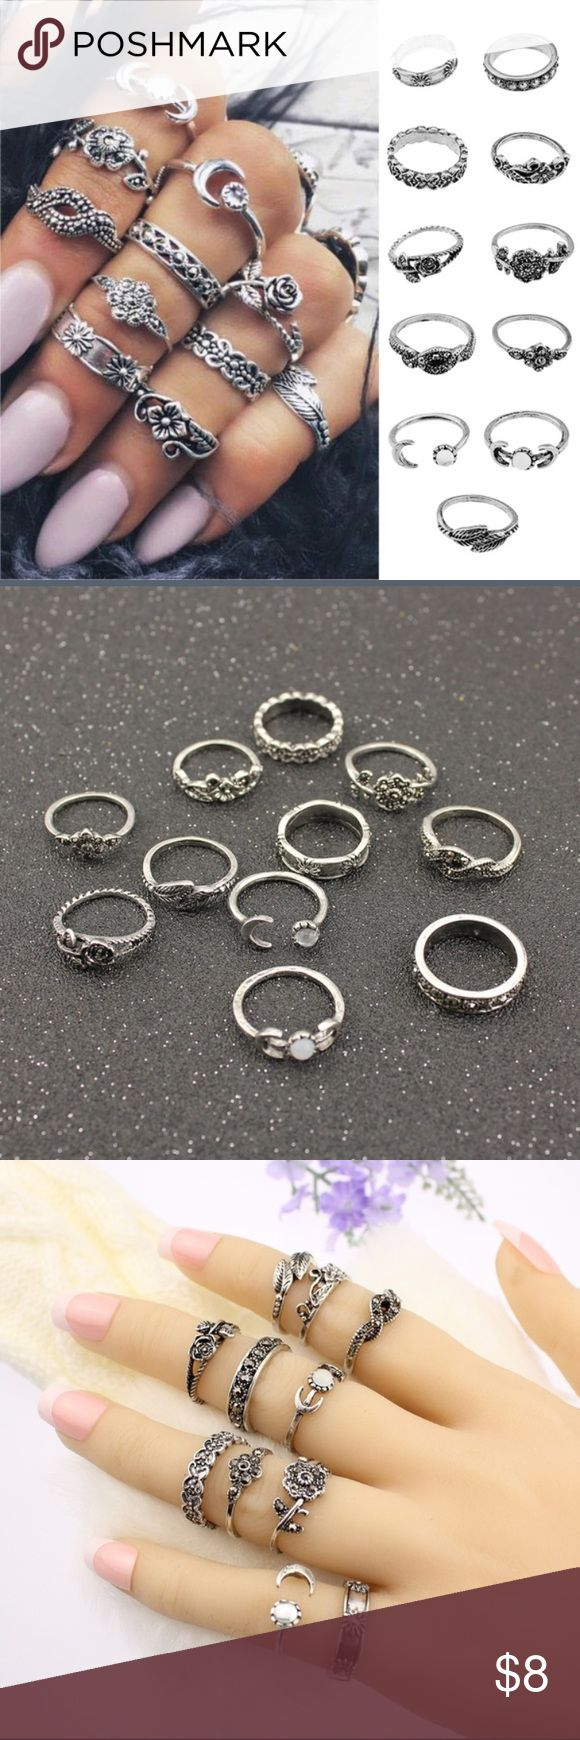 🌛🌸Vintage Floral Moon Knuckle Rings 🌛🌸Vintage Floral Moon Knuckle Rings   Features: •Total of eleven rings •Silver color •Intricate detailing •Some have gems/stones •Looks great with manicures Jewelry Rings